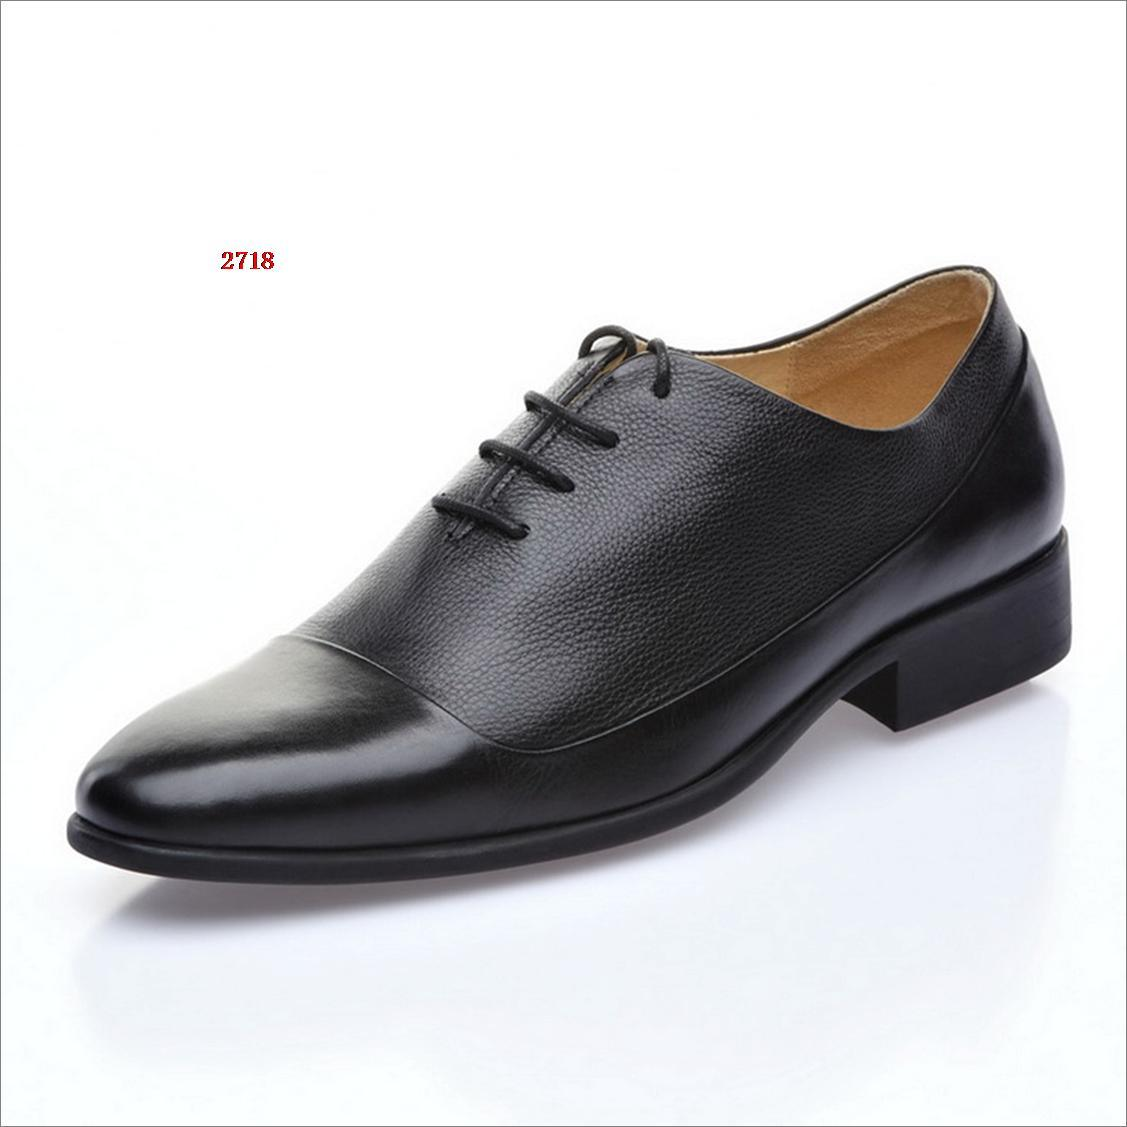 Men's Dress Shoes (2718